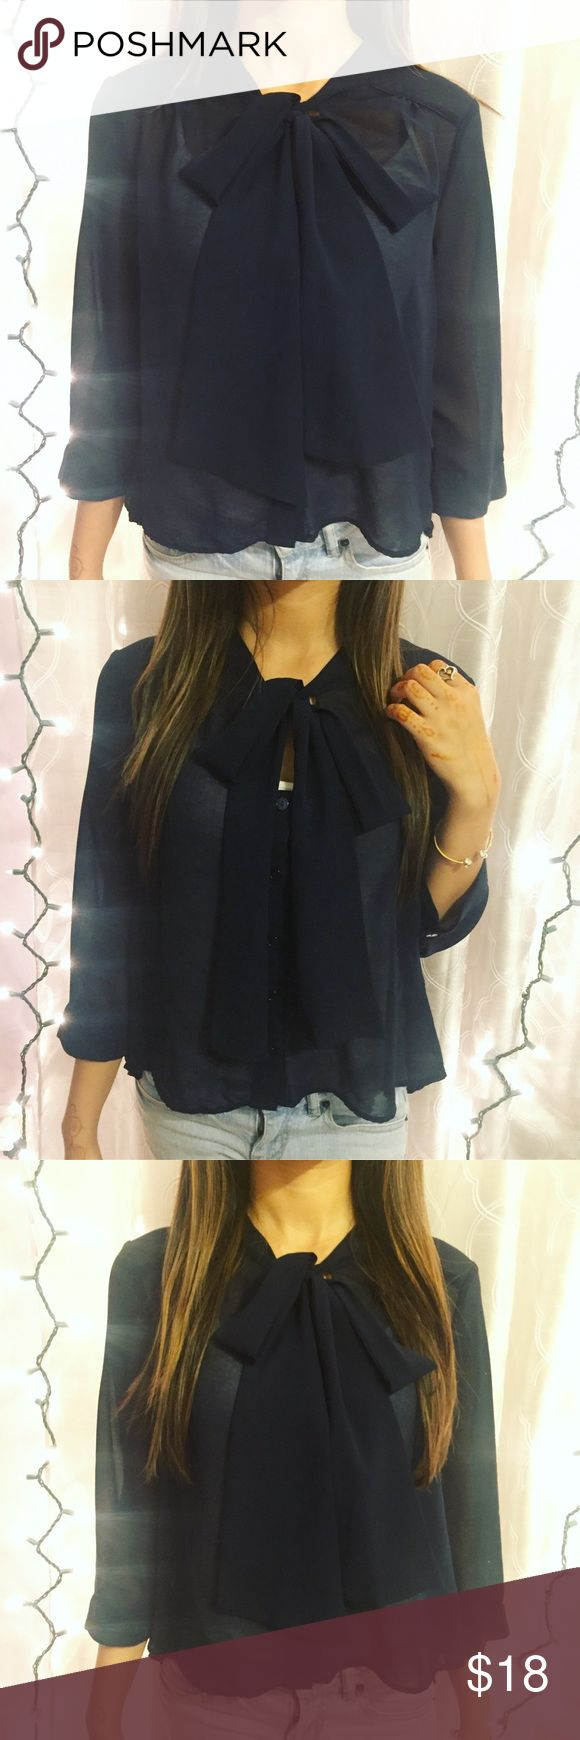 Navy blue, bow tie blouse Forever 21 navy blue, bow tie blouse Forever 21 Tops Blouses